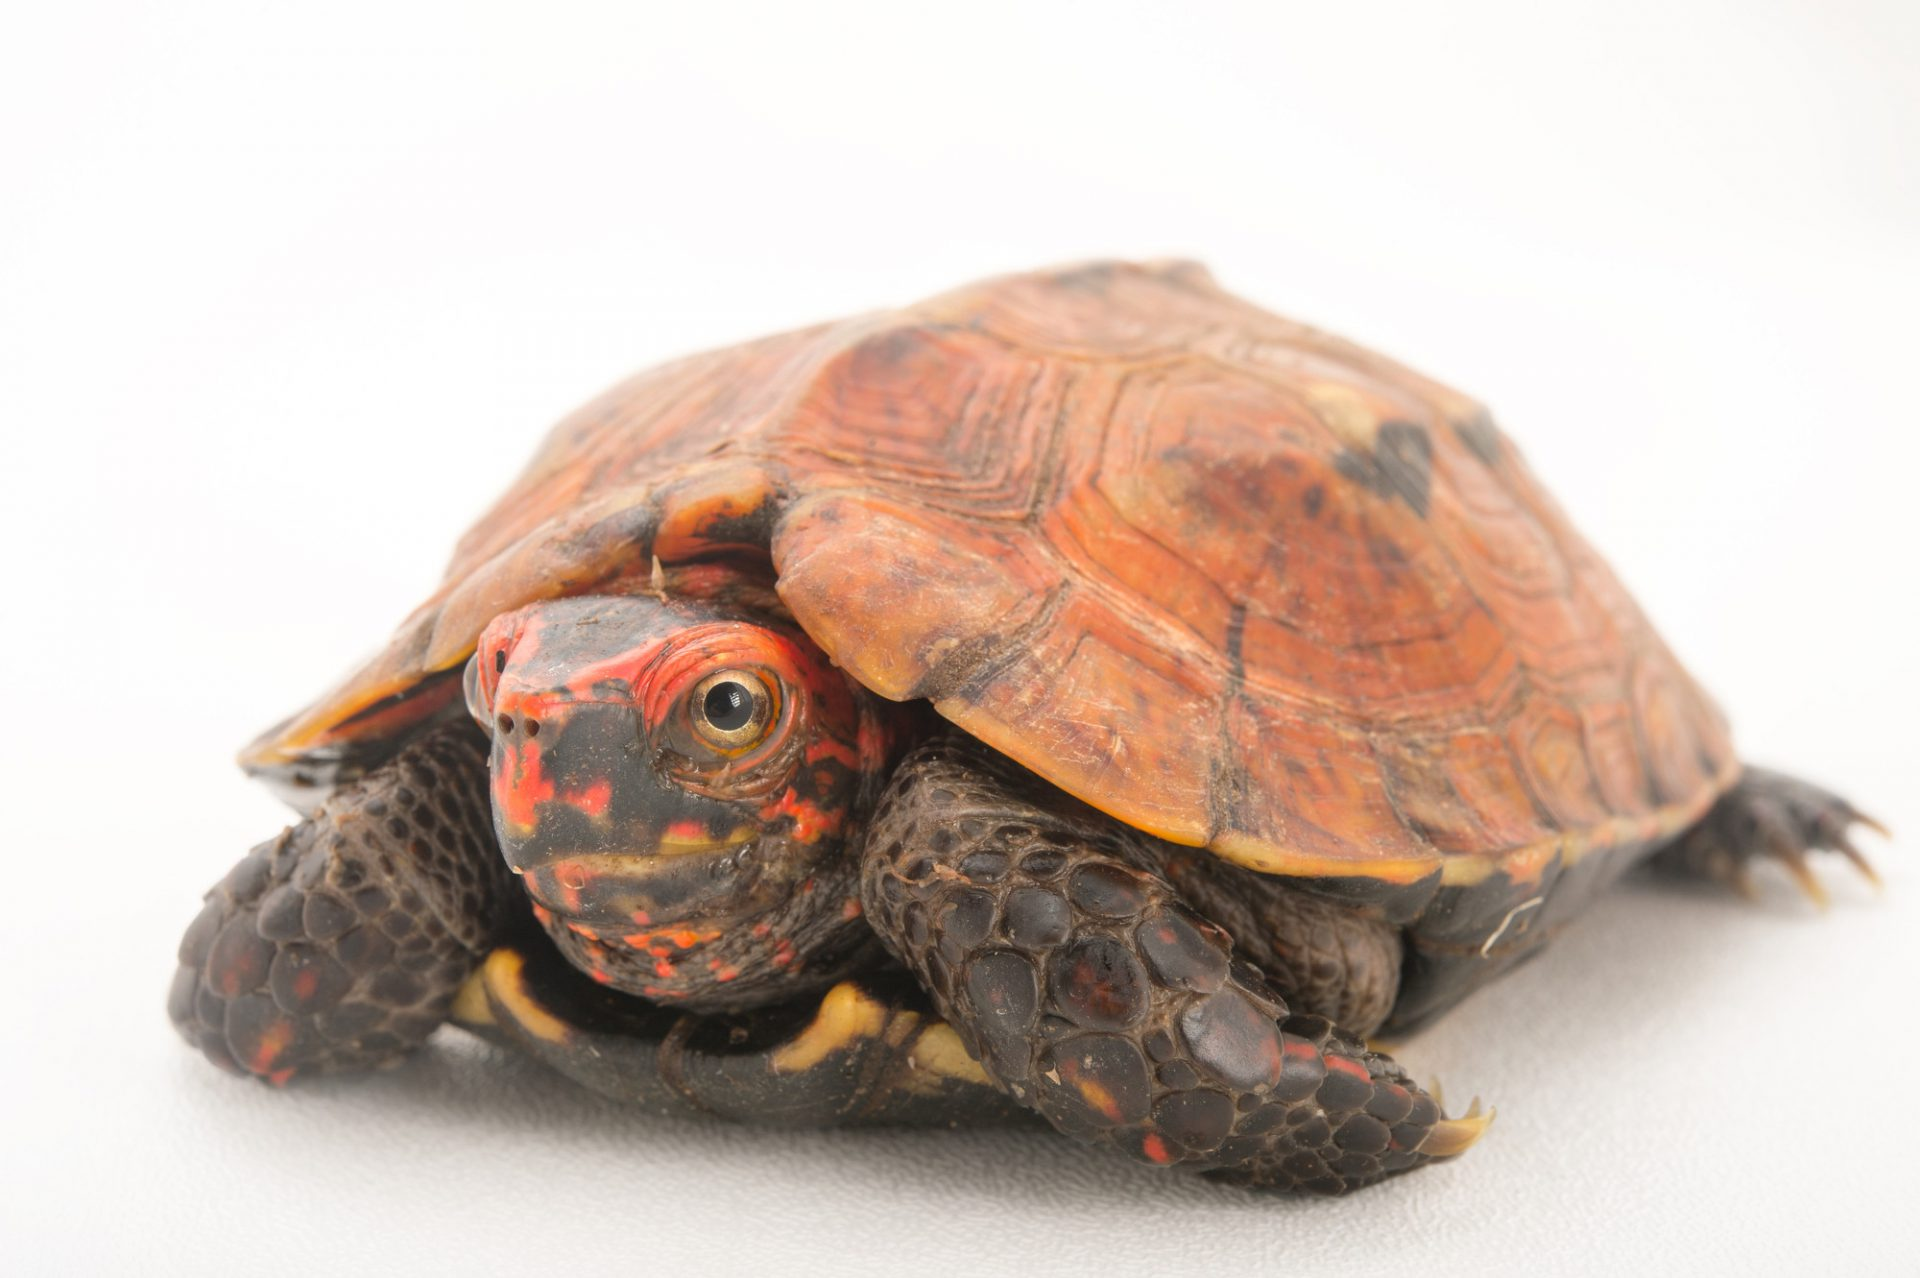 Picture of an endangered, male Okinawa black-breasted leaf turtle, Geoemyda japonica, at the Turtle Conservancy.